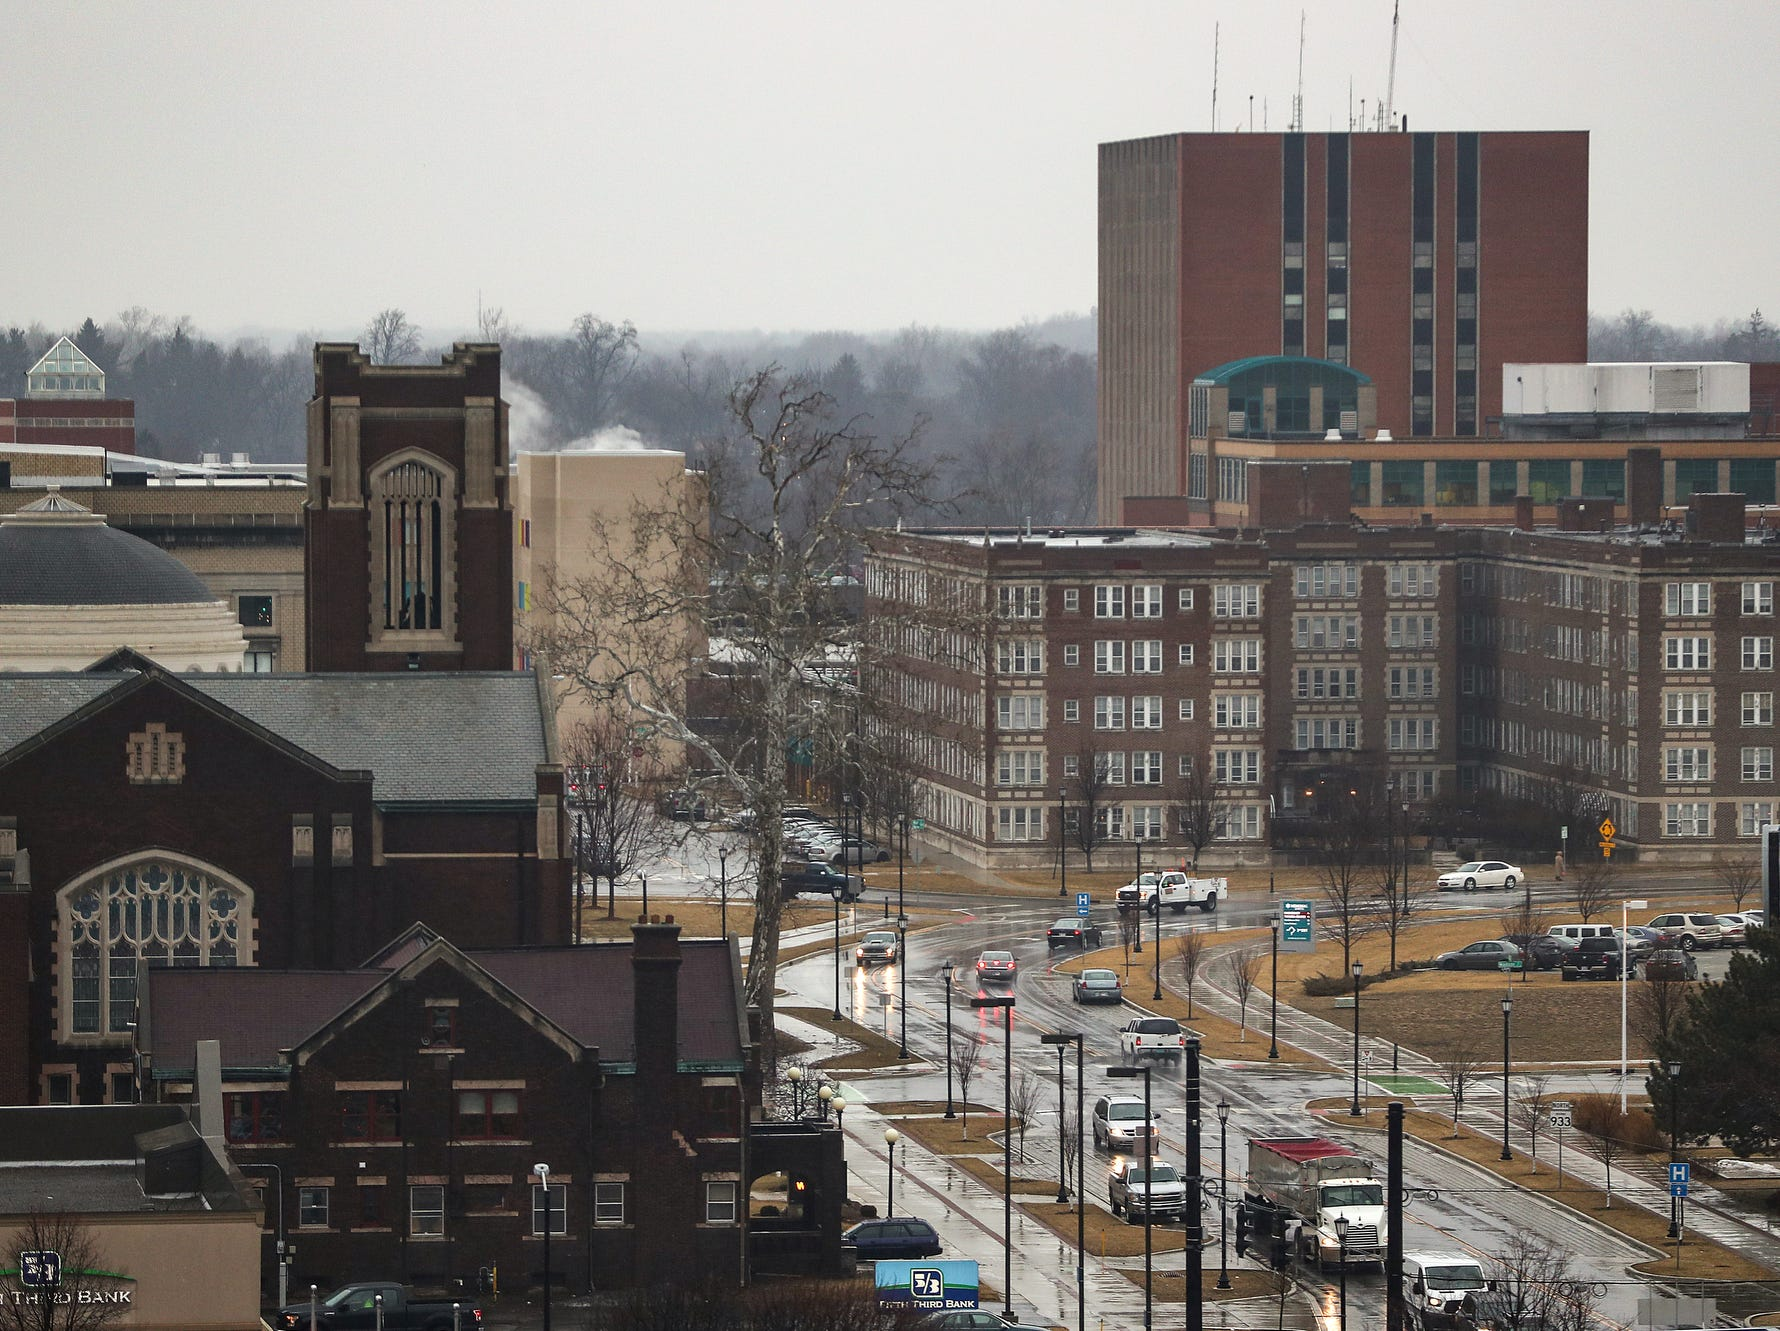 A north-facing view of South Bend, Ind., as seen from Liberty Tower on Wednesday, March 13, 2019.